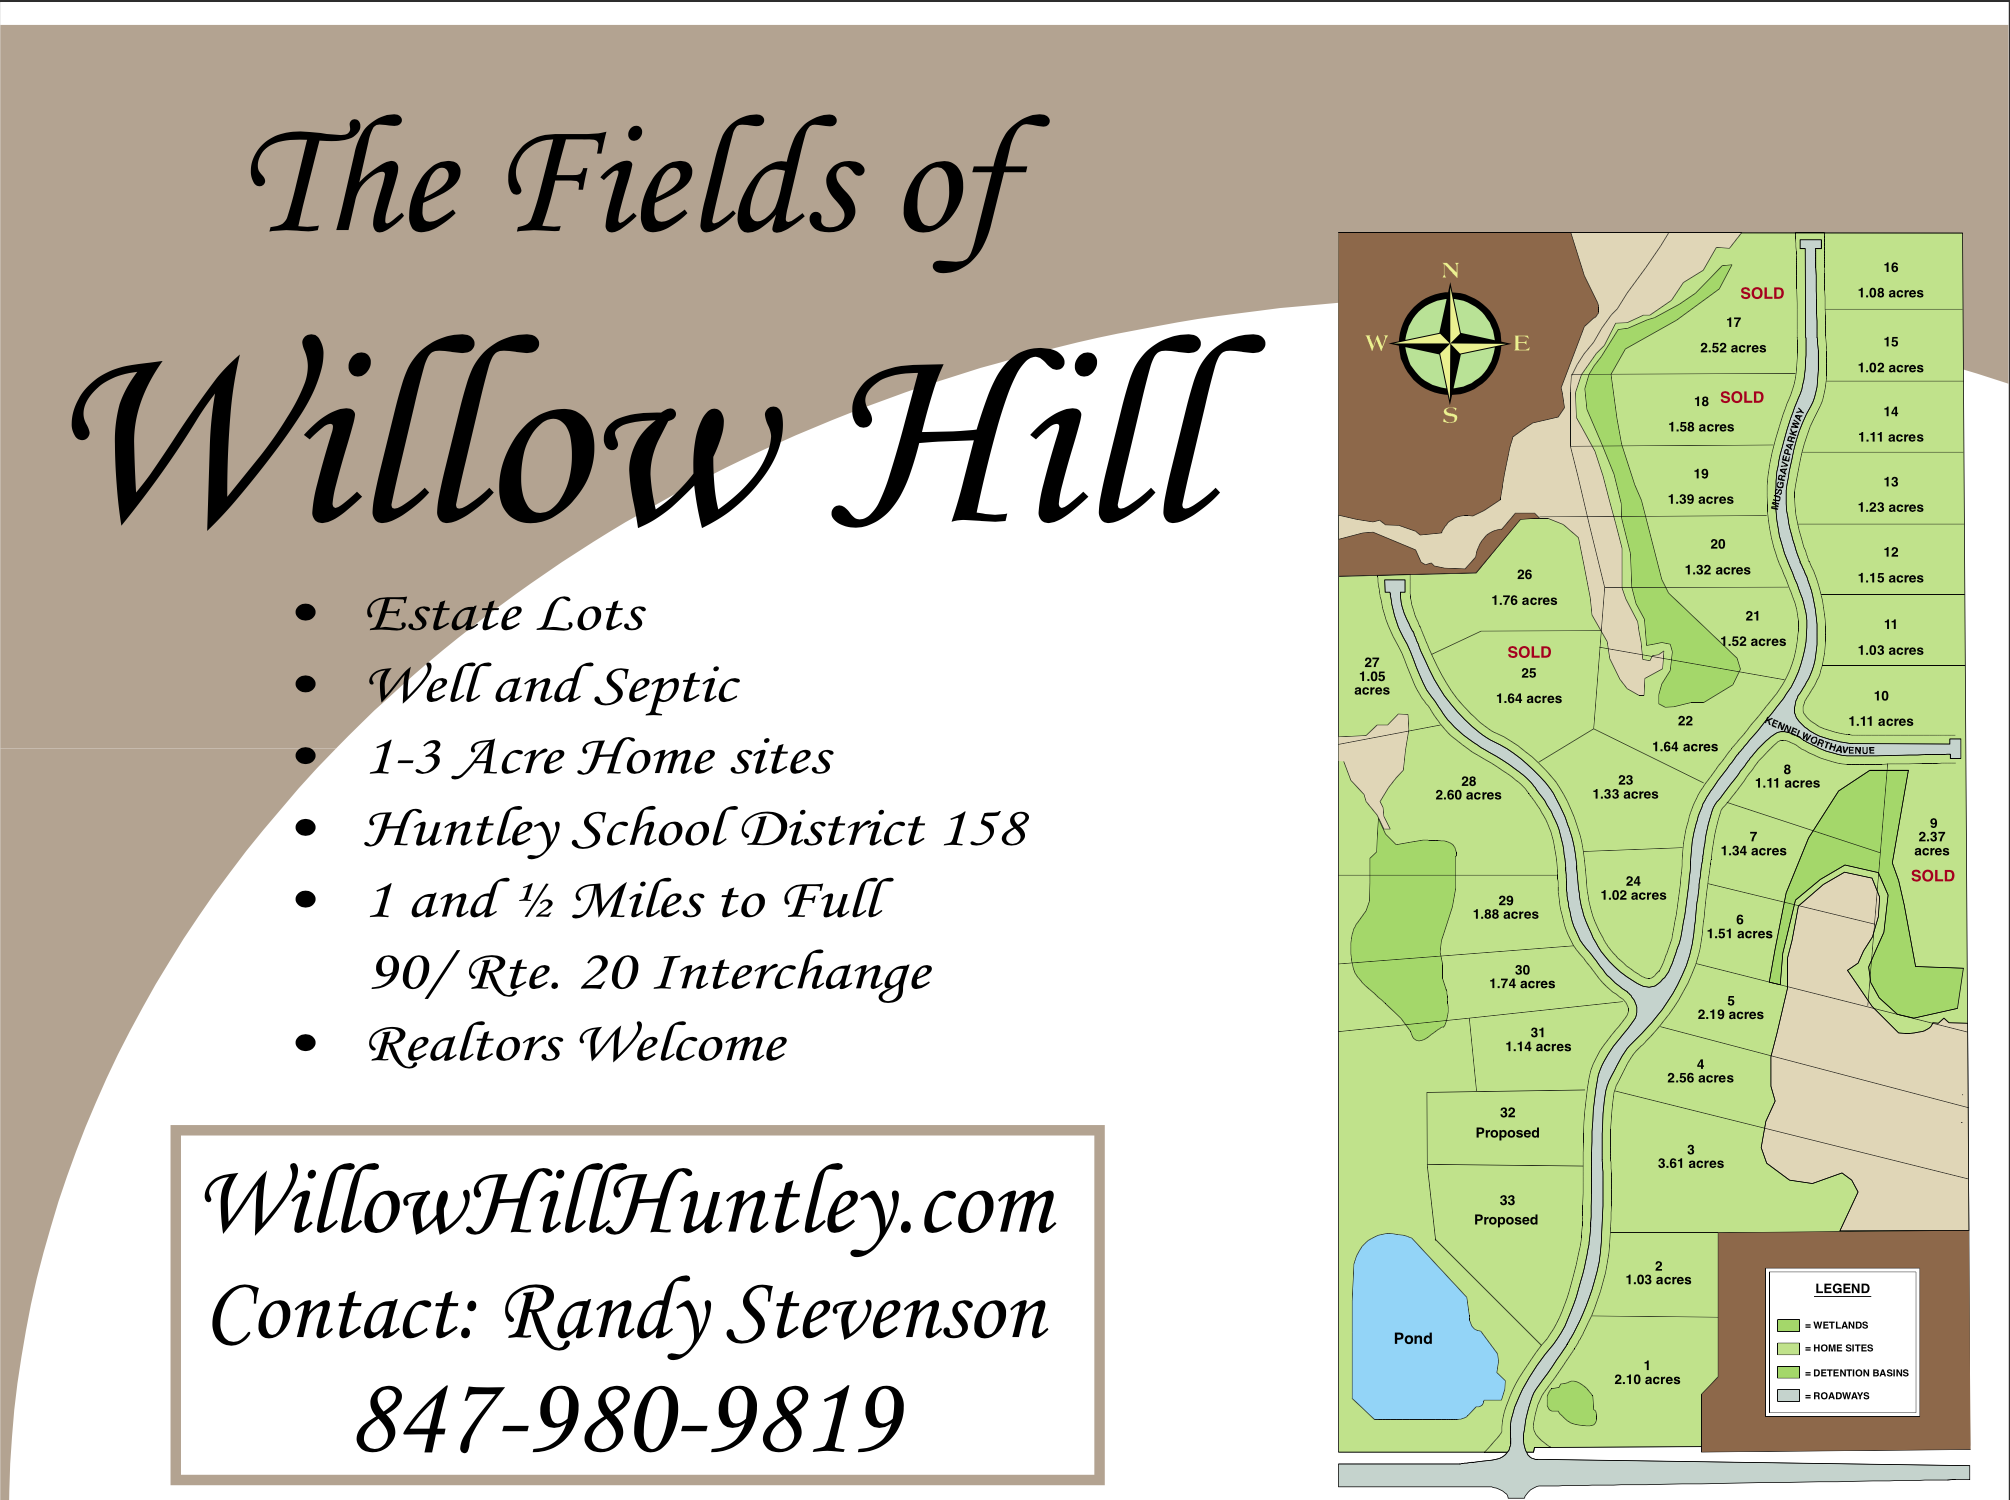 Hampshire Illinois Map.Fields Of Willow Hill Map